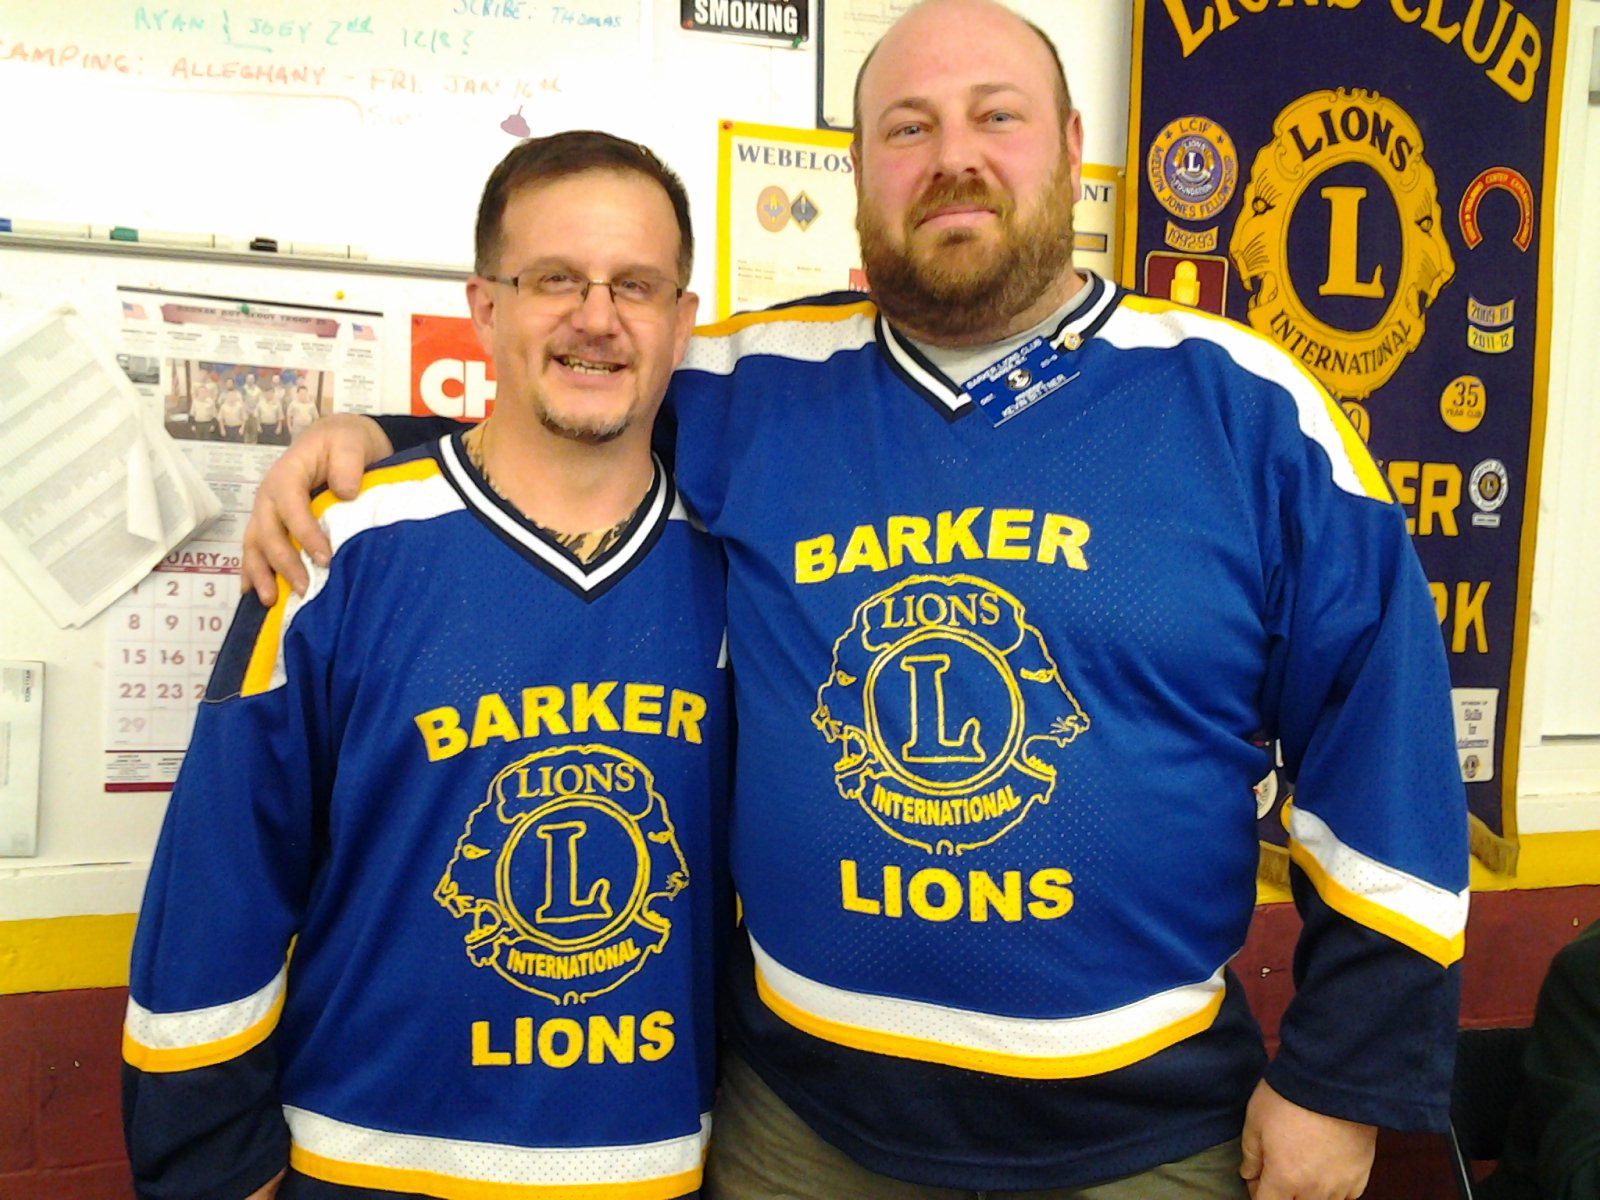 Barker Lions Club past presidents Scott Ecker and Kevin Bittner show off their Lions gear to show their enthusiasm for the annual cheese sale.